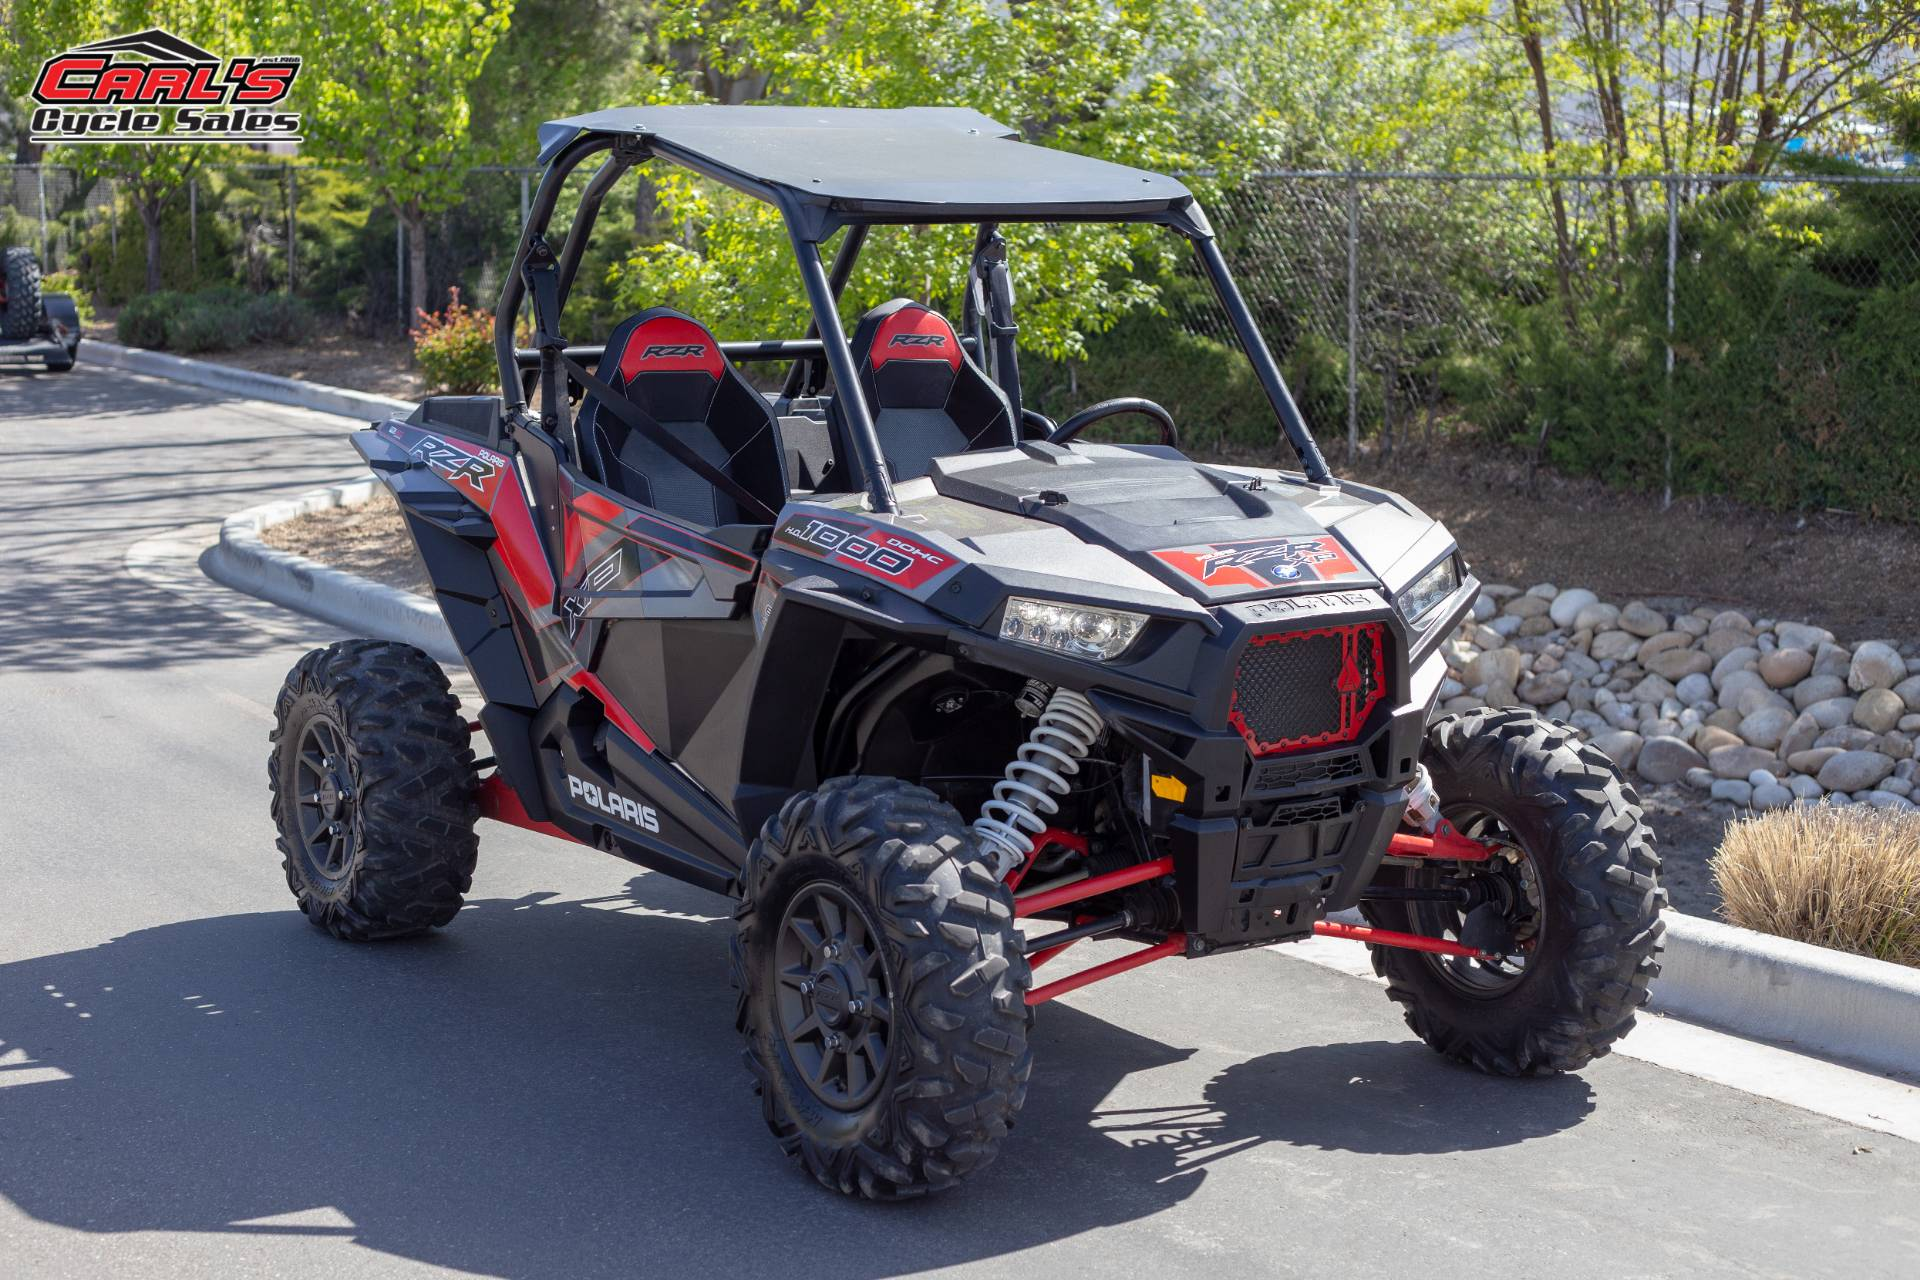 2017 Polaris RZR XP 1000 EPS in Boise, Idaho - Photo 3